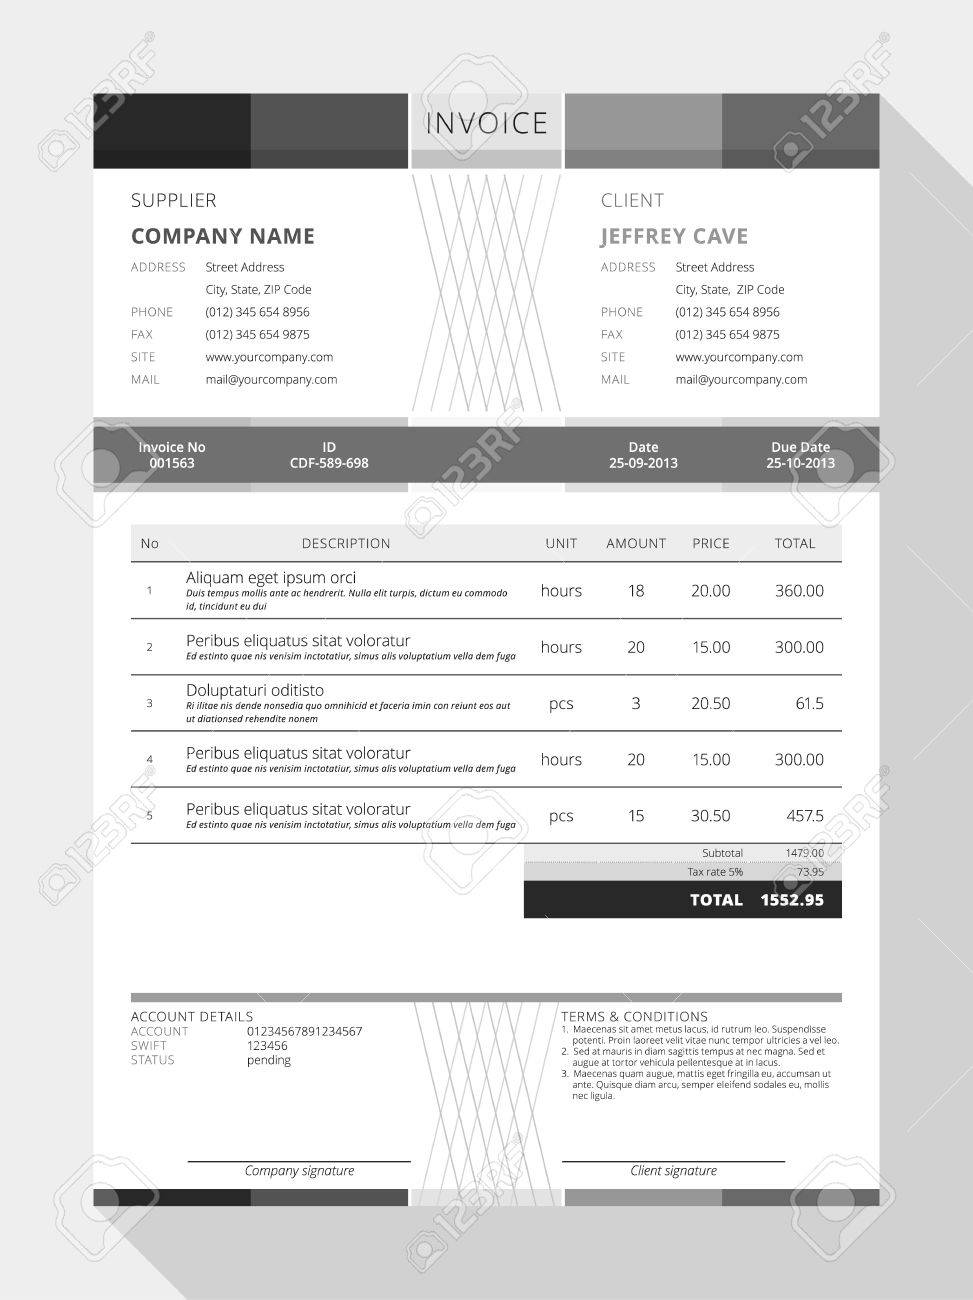 Imagerackus  Marvelous Design An Invoice  Professional Graphic Design Invoice  With Outstanding Vector Customizable Invoice Form Template Design Vector   Design An Invoice With Breathtaking House Rental Receipt Format Also Things You Can Claim On Tax Without Receipts In Addition What Can I Claim On Tax Without Receipts And Landlord Receipt For Rent As Well As Taxi Receipt Template India Additionally Cash Receipt Software Free Download From Happytomco With Imagerackus  Outstanding Design An Invoice  Professional Graphic Design Invoice  With Breathtaking Vector Customizable Invoice Form Template Design Vector   Design An Invoice And Marvelous House Rental Receipt Format Also Things You Can Claim On Tax Without Receipts In Addition What Can I Claim On Tax Without Receipts From Happytomco